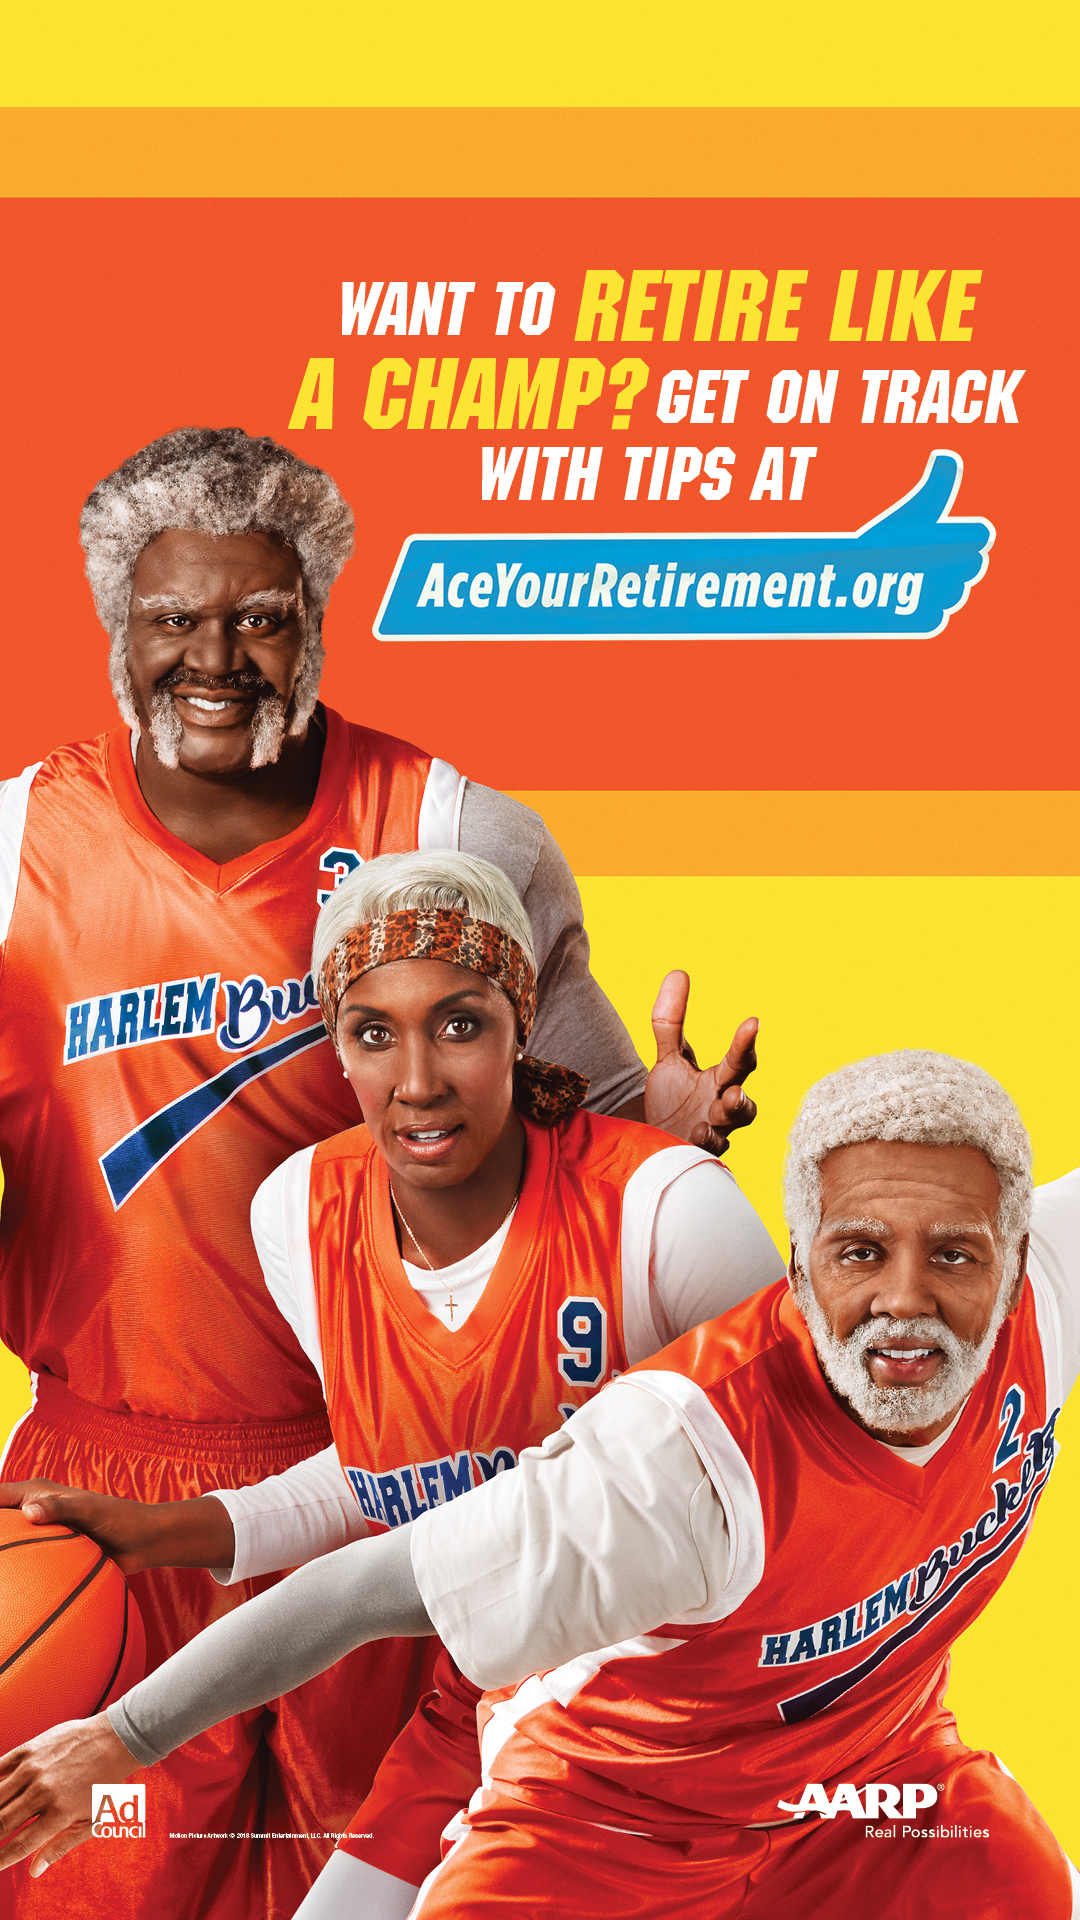 Print PSA: Just like Uncle Drew makes all the right moves on the basketball court, you can make smart financial moves to retire like a champ. Visit AceYourRetirement.org.